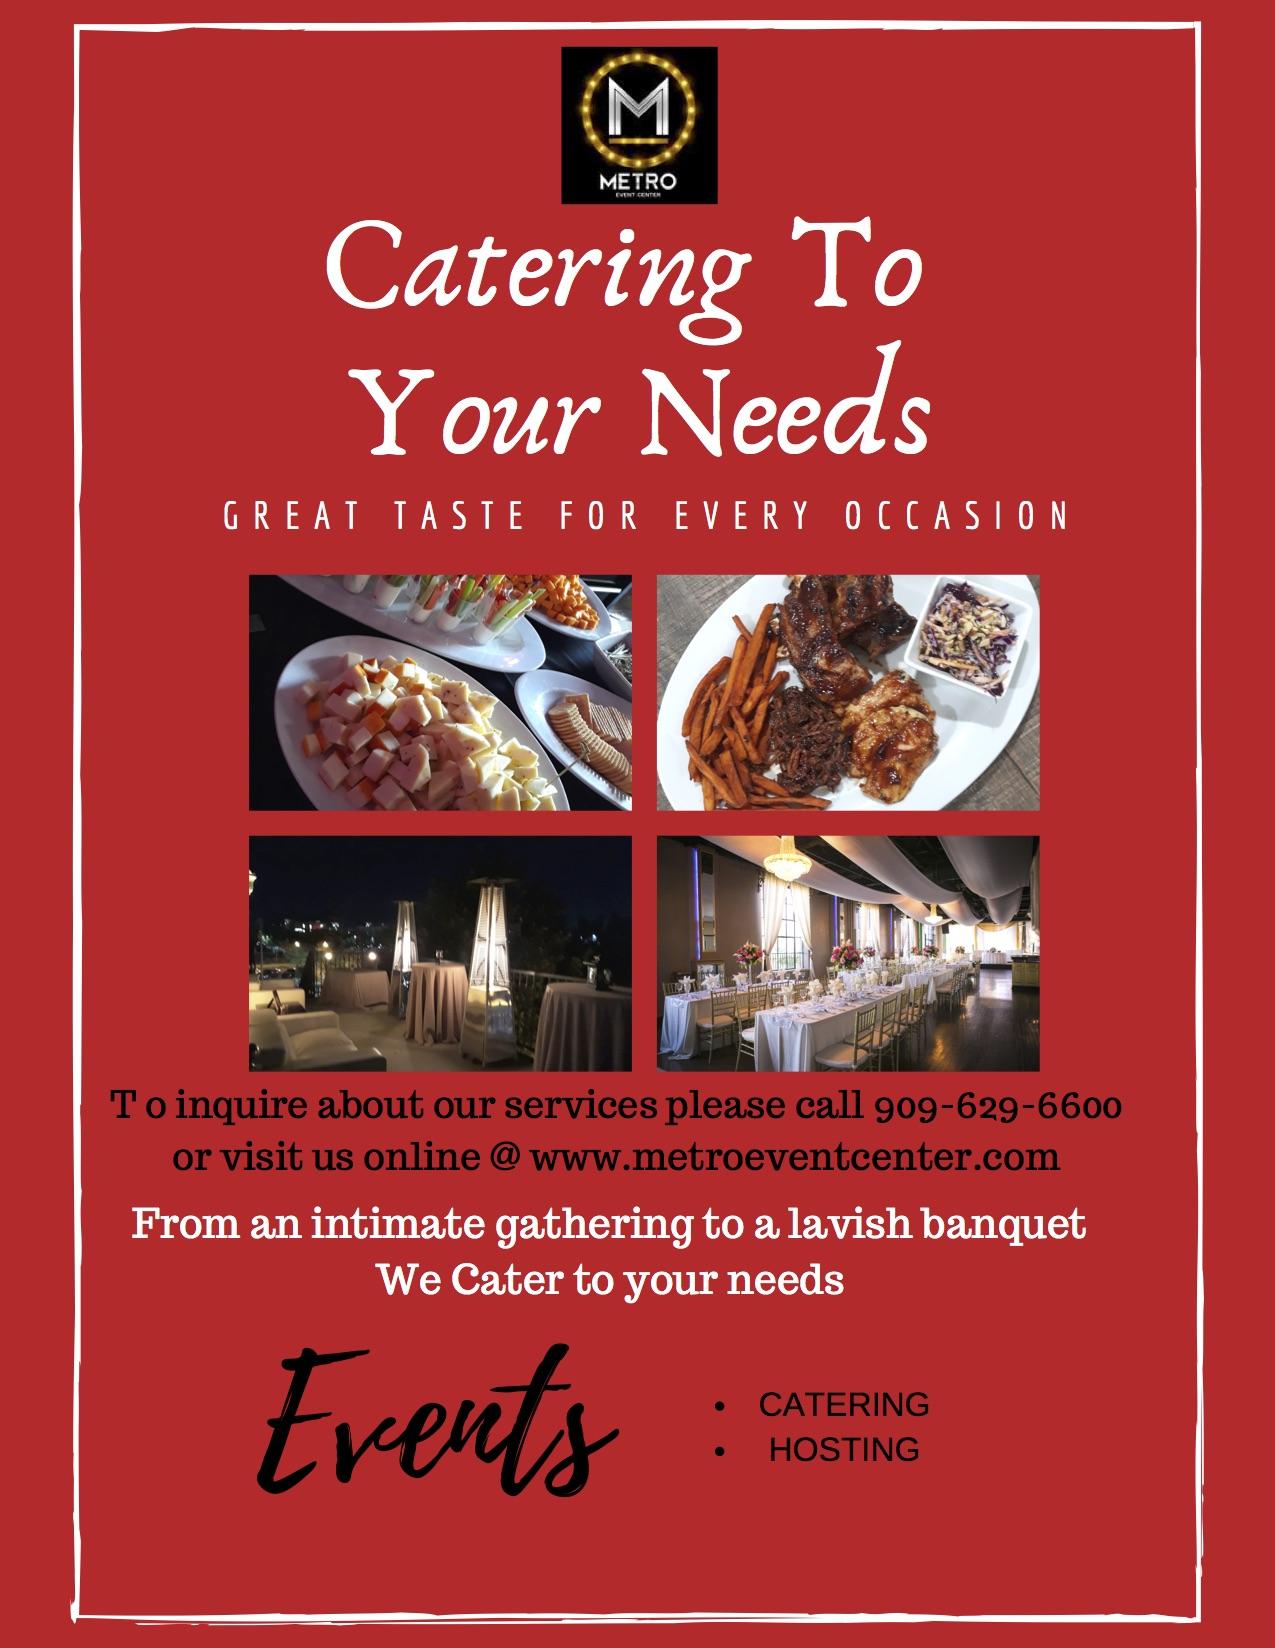 Catering To Your Needs-2.jpg